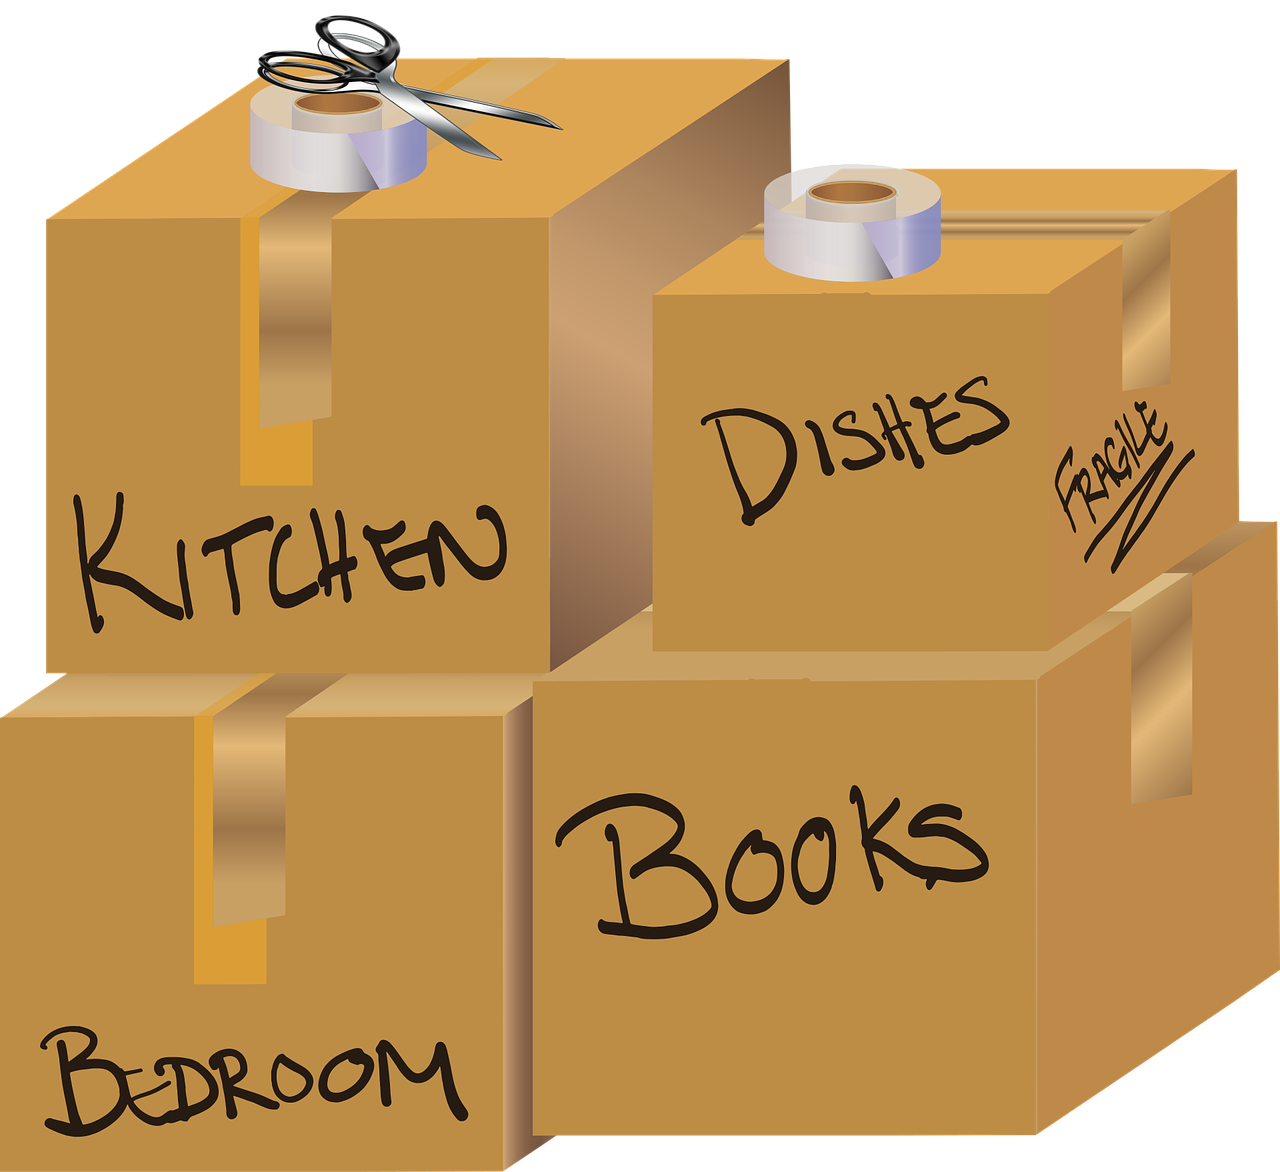 Packing tips when moving to a new home